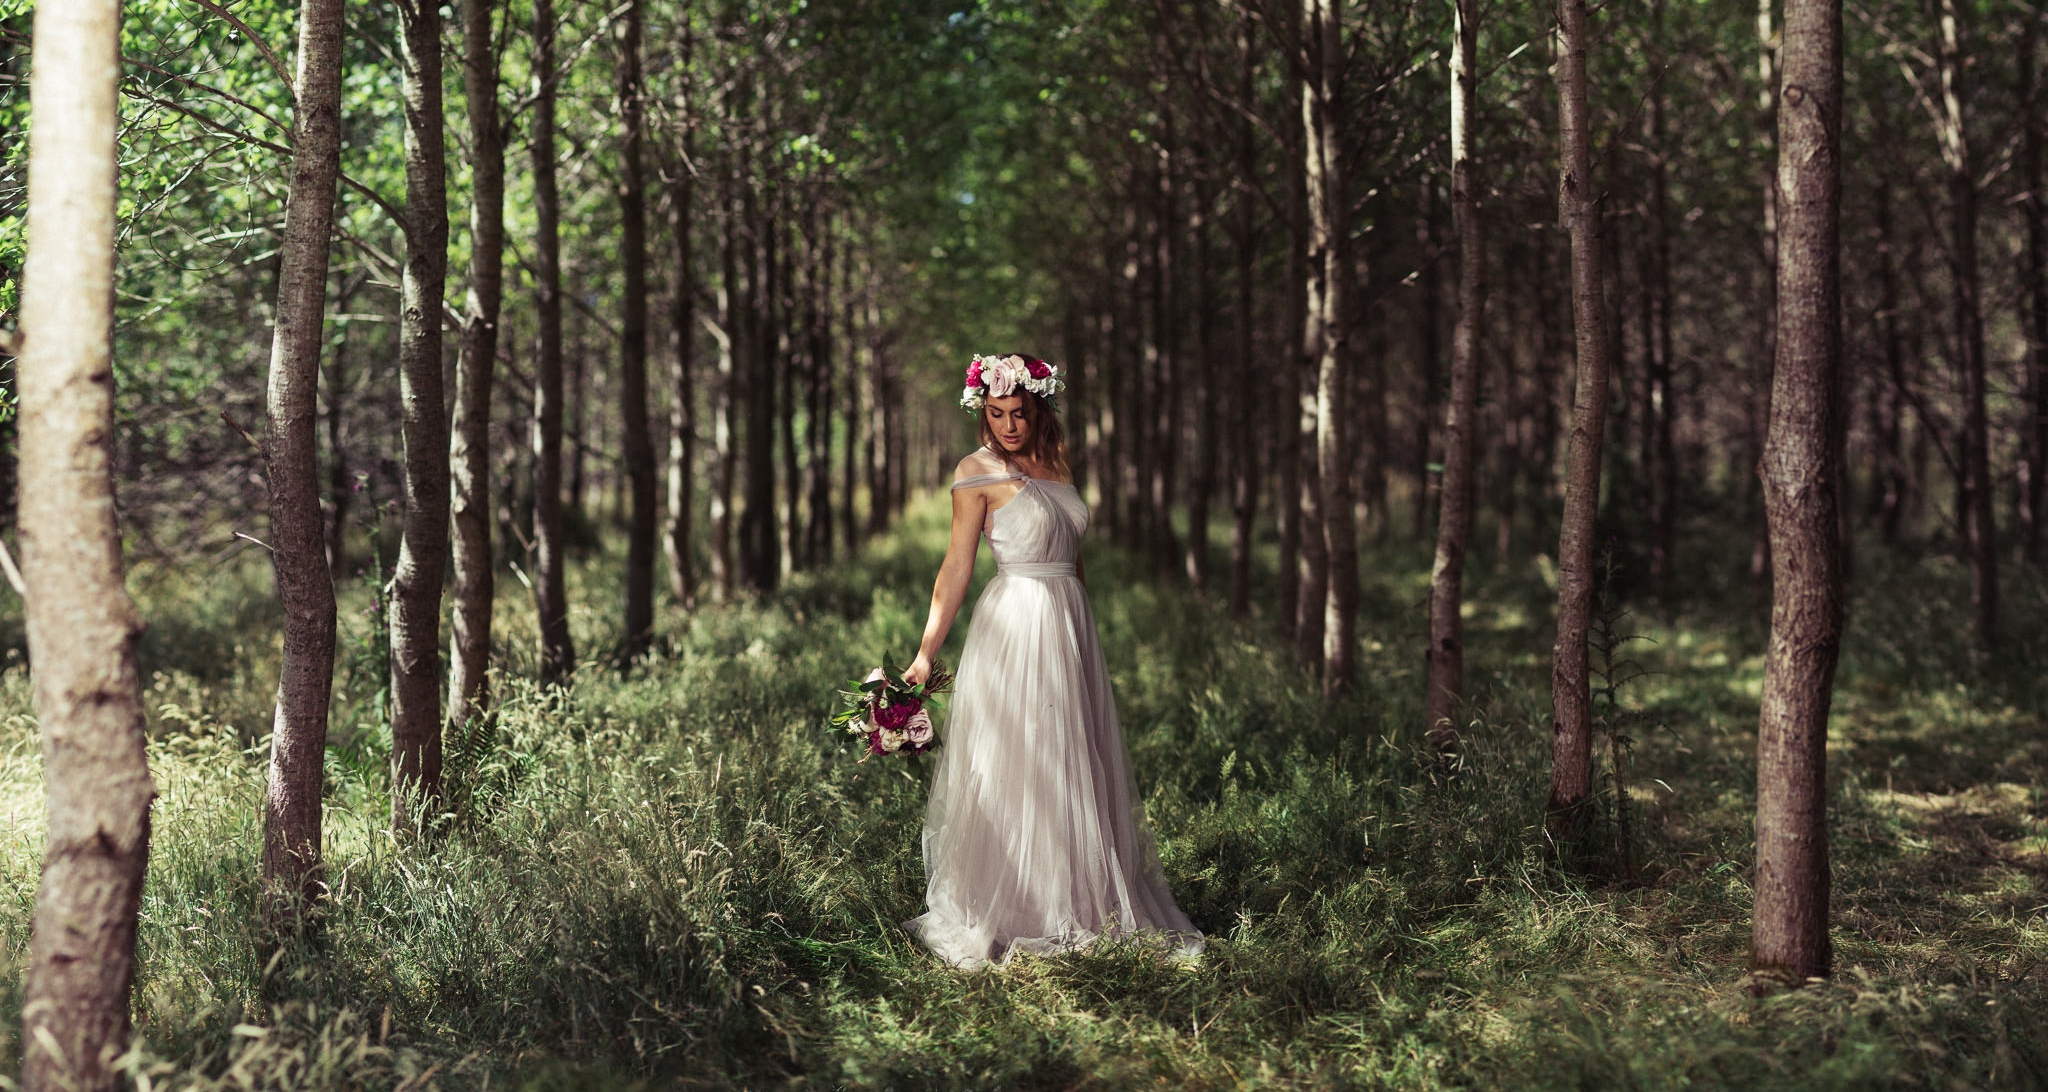 The Wyldes - Fake Wedding - LO-RES - DO NOT USE-113.jpg